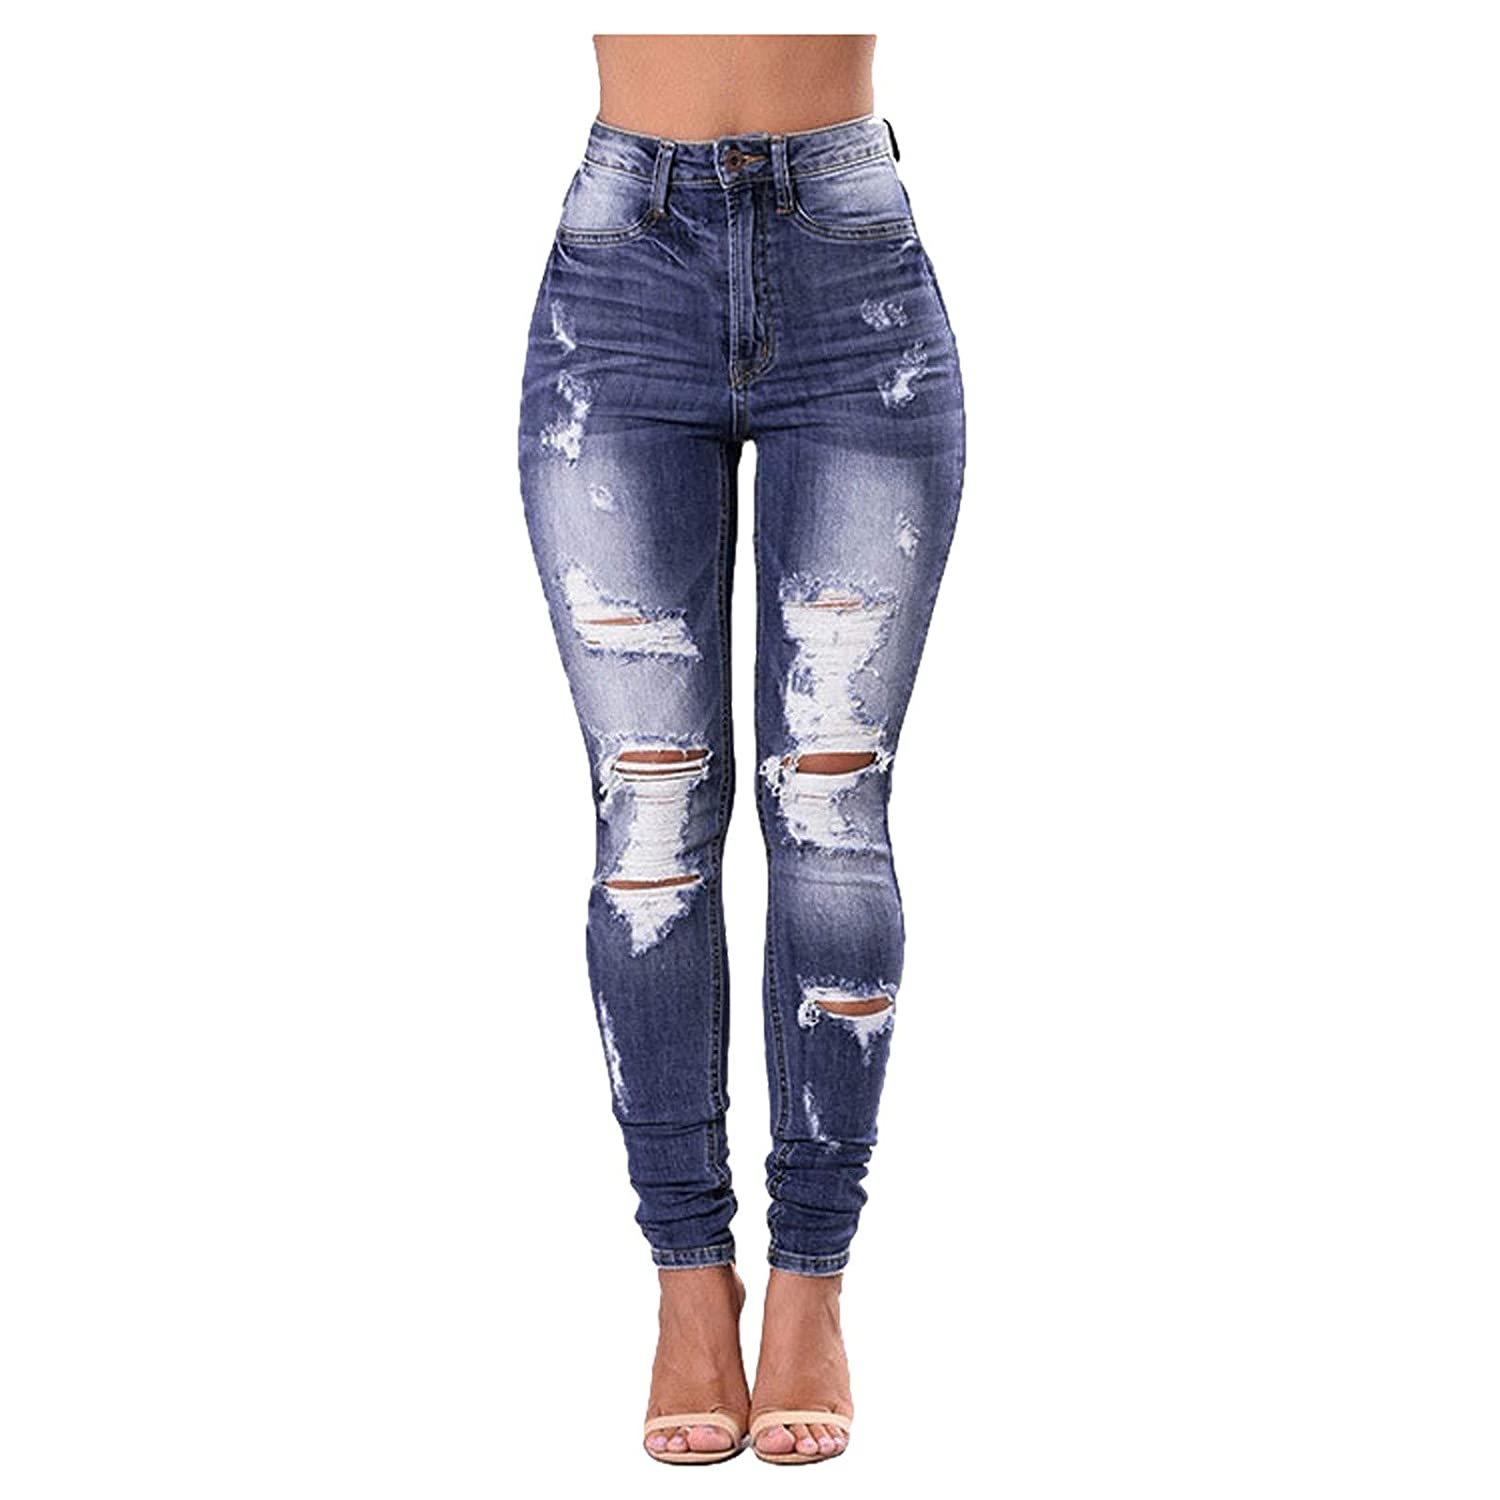 JPOQW Hight Waisted Ripped Jeans D Hole Max 55% OFF Skinny Women Denim Product